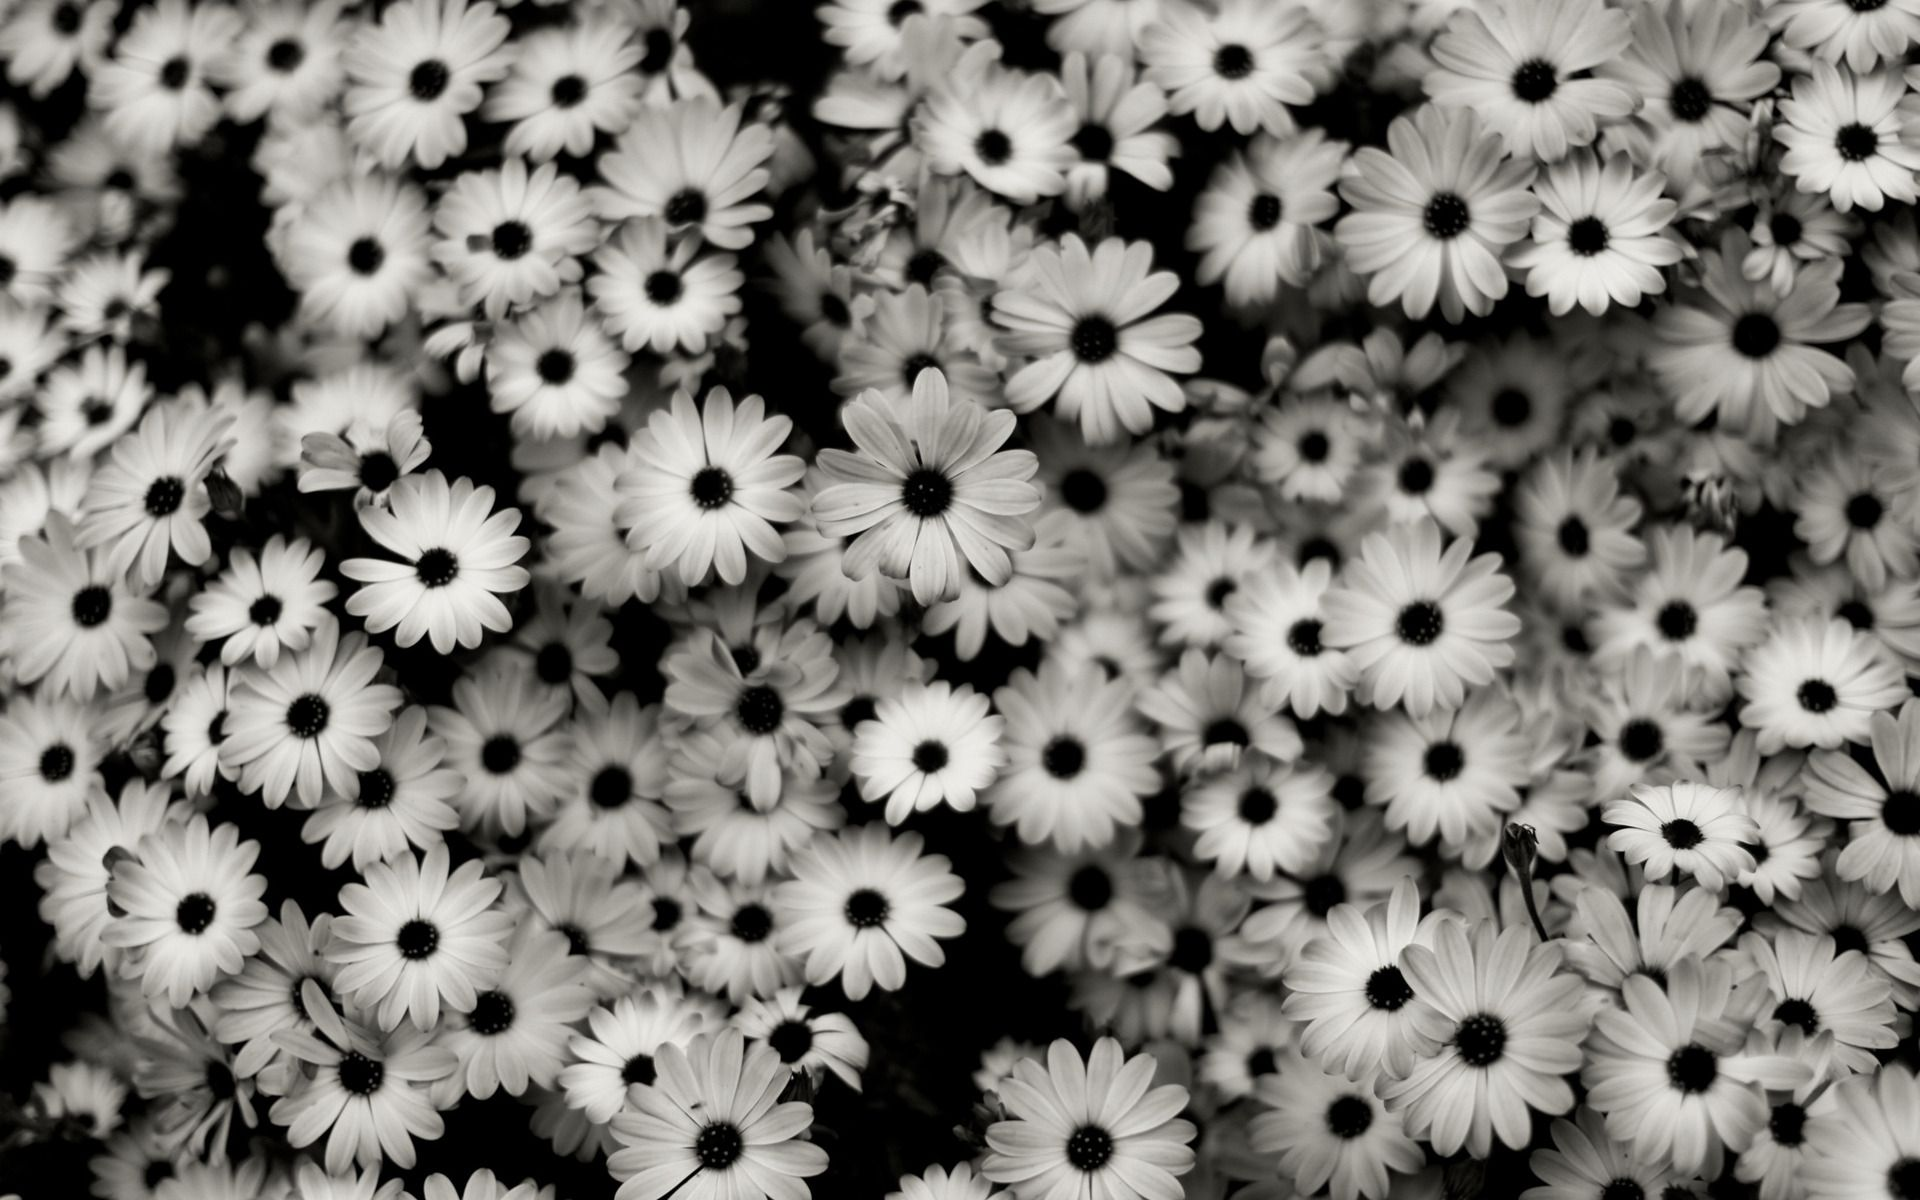 Unduh 77 Background Tumblr Black And White HD Paling Keren